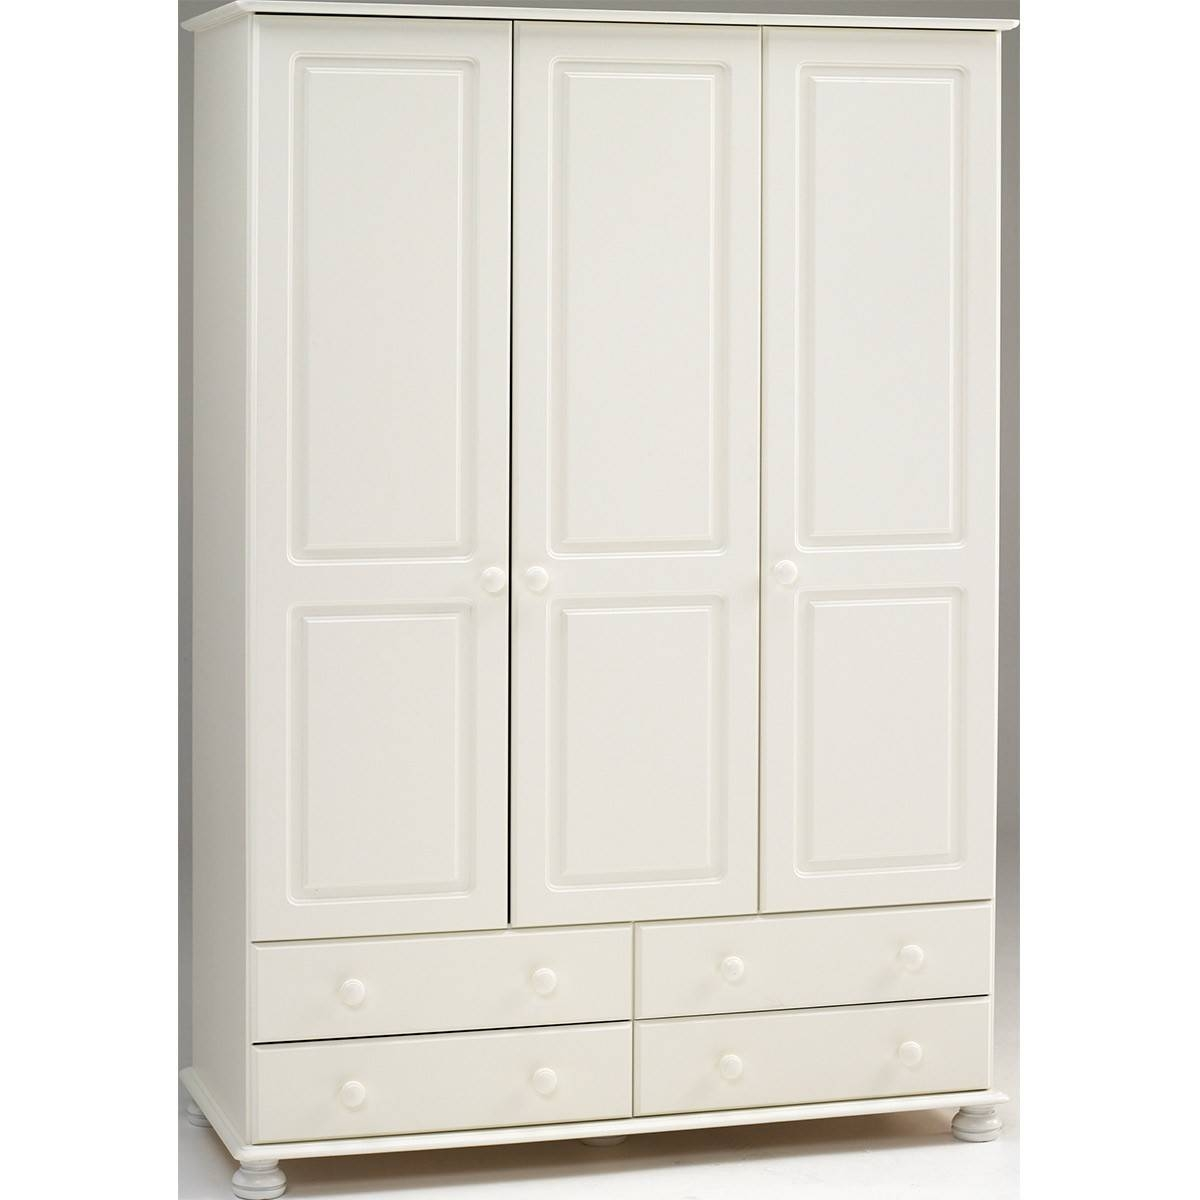 Salisbury White 3 Door 4 Drawer Wardrobe From The Original Factory pertaining to 3 Door White Wardrobes (Image 19 of 30)